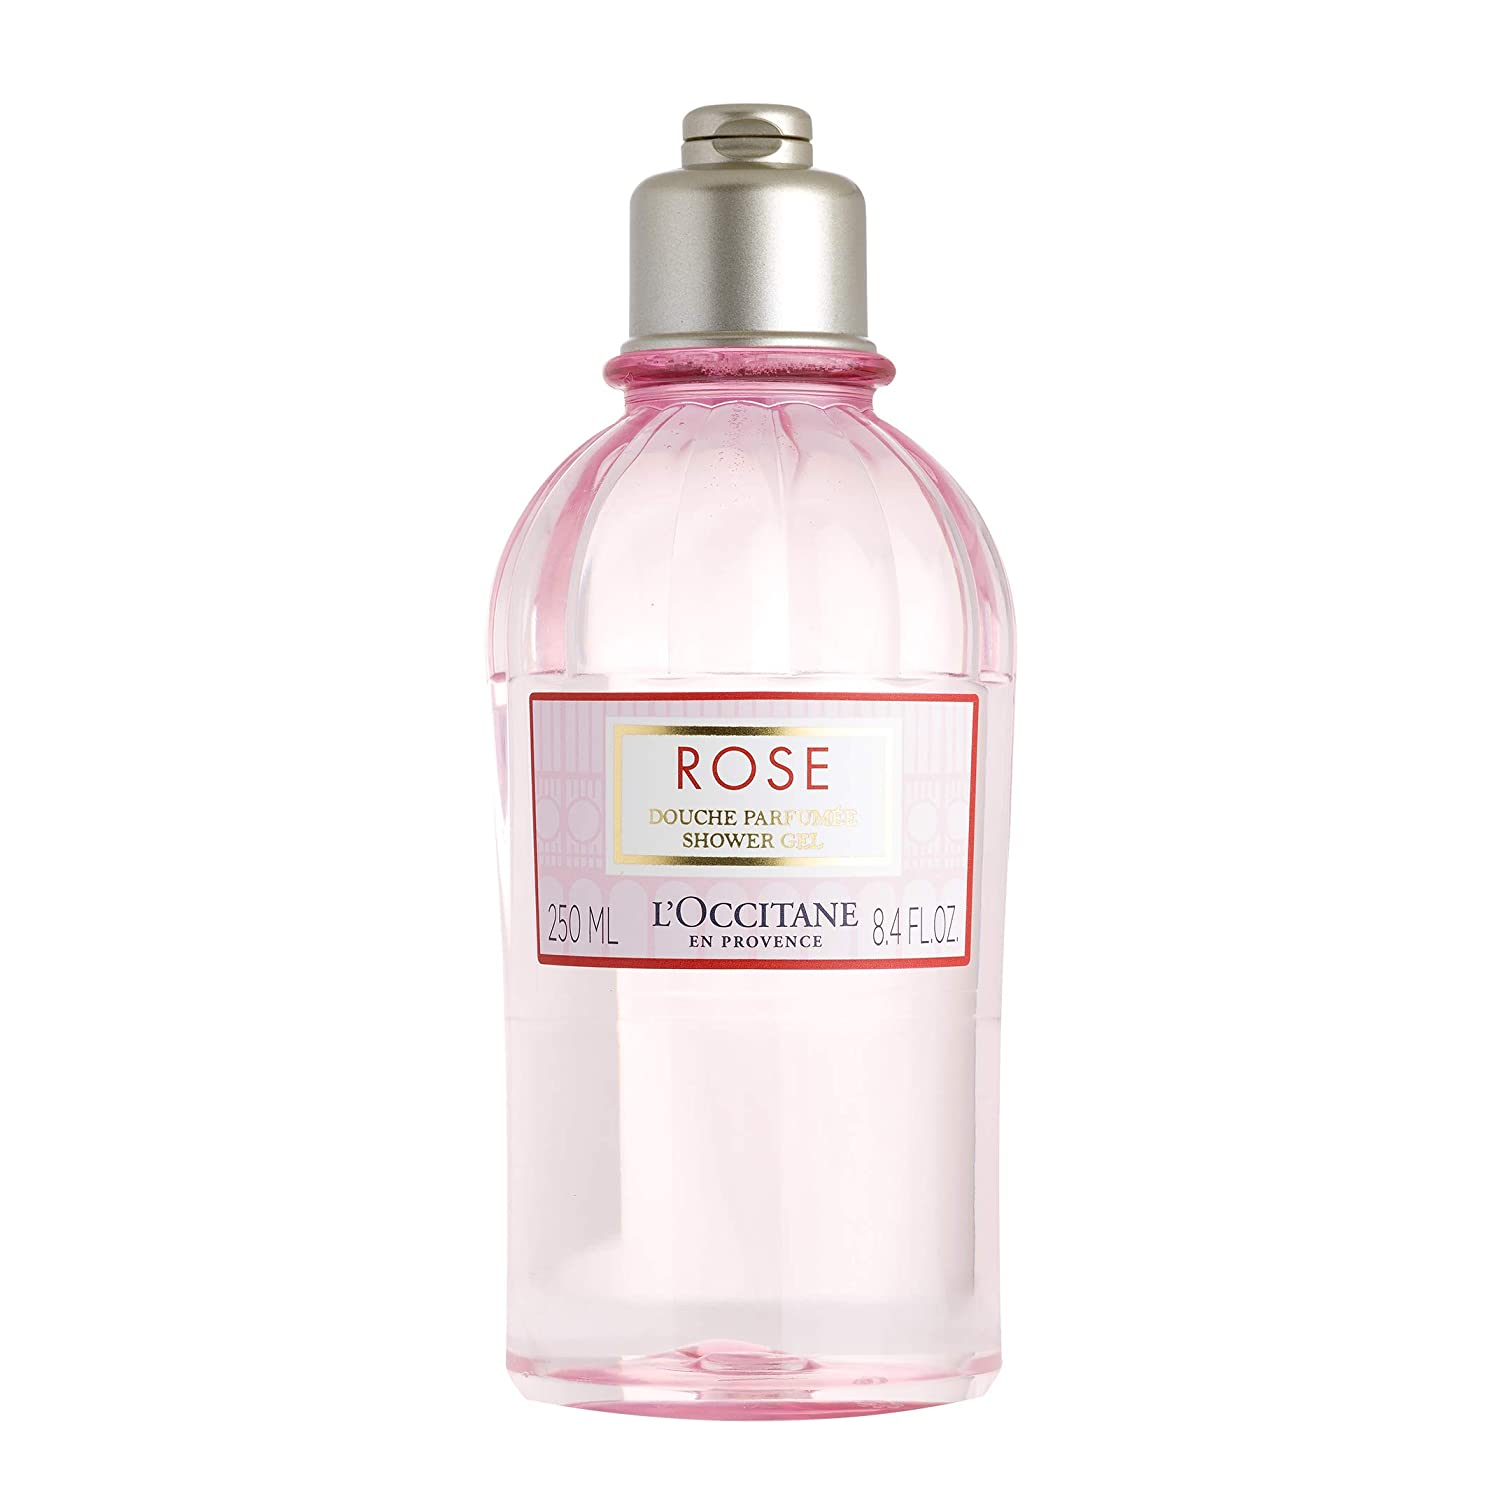 L'Occitane Gentle Rose Shower Gel